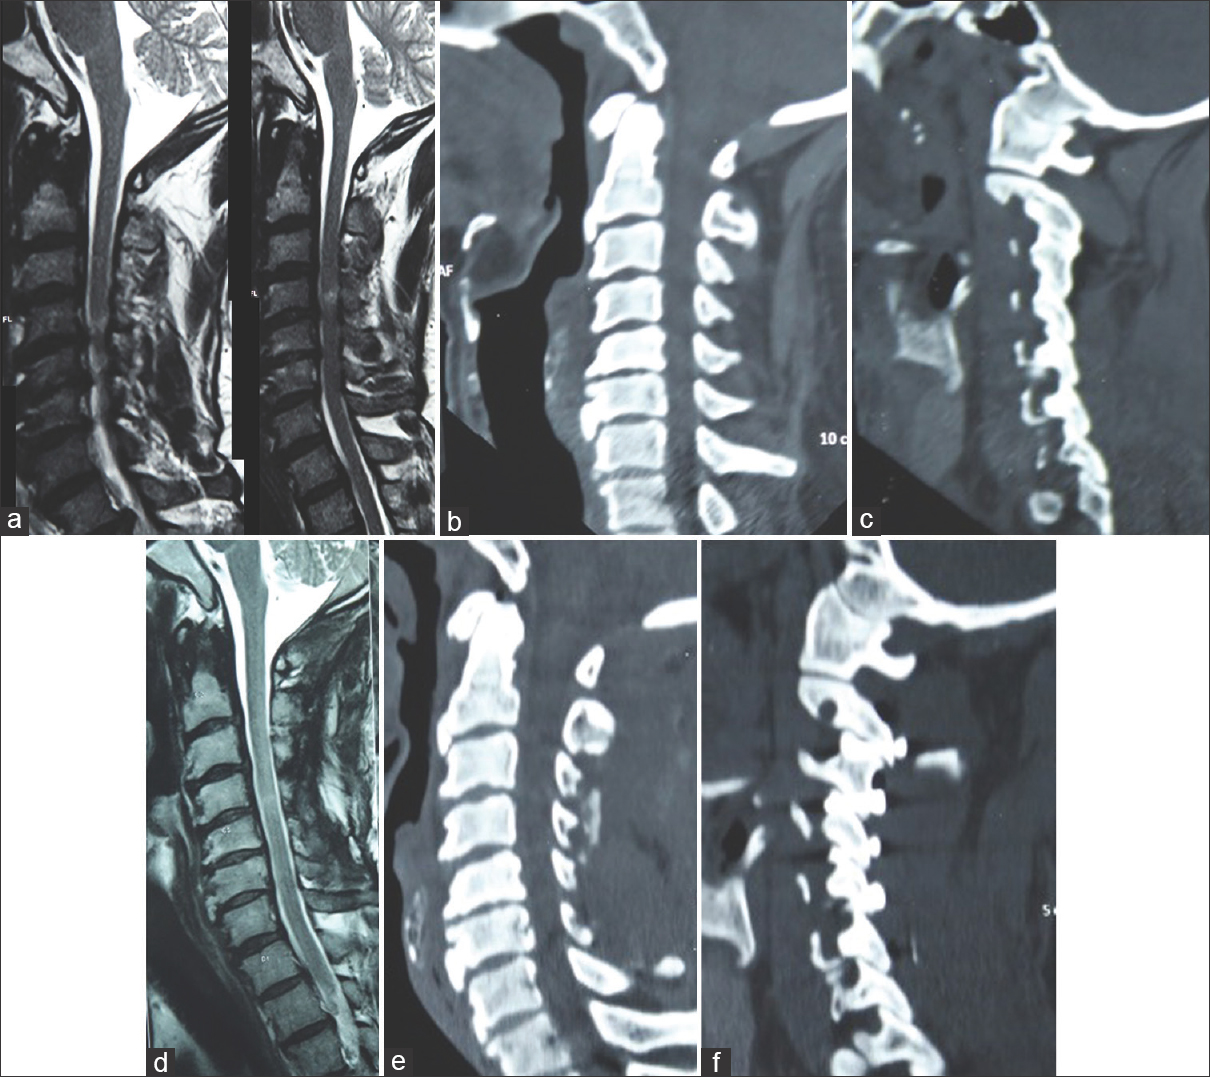 Figure 2: Images of a 48-year-old male patient [Case 9]. (a) T2 weighted sagittal magnetic resonance imaging showing cervical spondylotic myelopathy with disc protrusions at C3-4, C4-5 and C5-6 levels. (b) Computed tomography scan of the cervical spine. (c) Computed tomography scan of the cervical spine with cut through the facets showing the Type 3 atlantoaxial facetal instability. (d) Postoperative magnetic resonance imaging showing the reduction of cord compression. (e) Postoperative computed tomography scan. (f) Postoperative computed tomography scan with the cuts through the facets showing C2-3, C3-4, C4-5 and C5-6 transarticular screw fixation